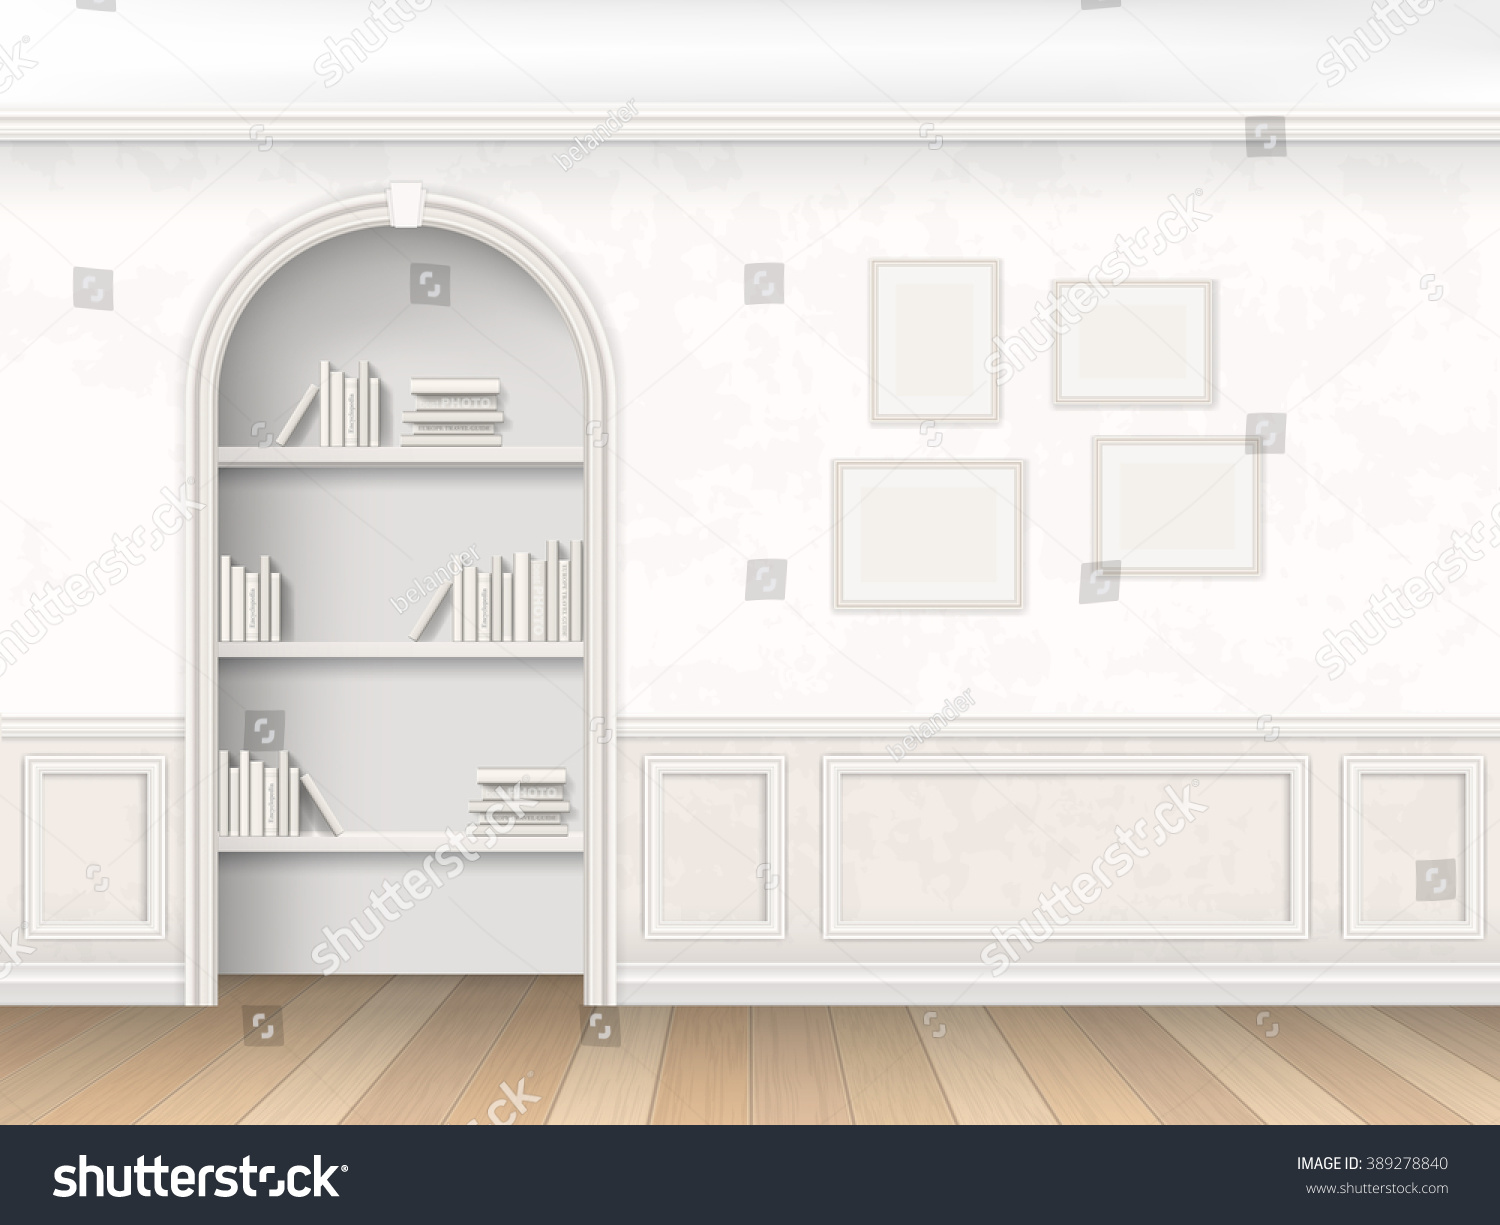 The Wall Room With Arch Books And Decorative Wall Panels